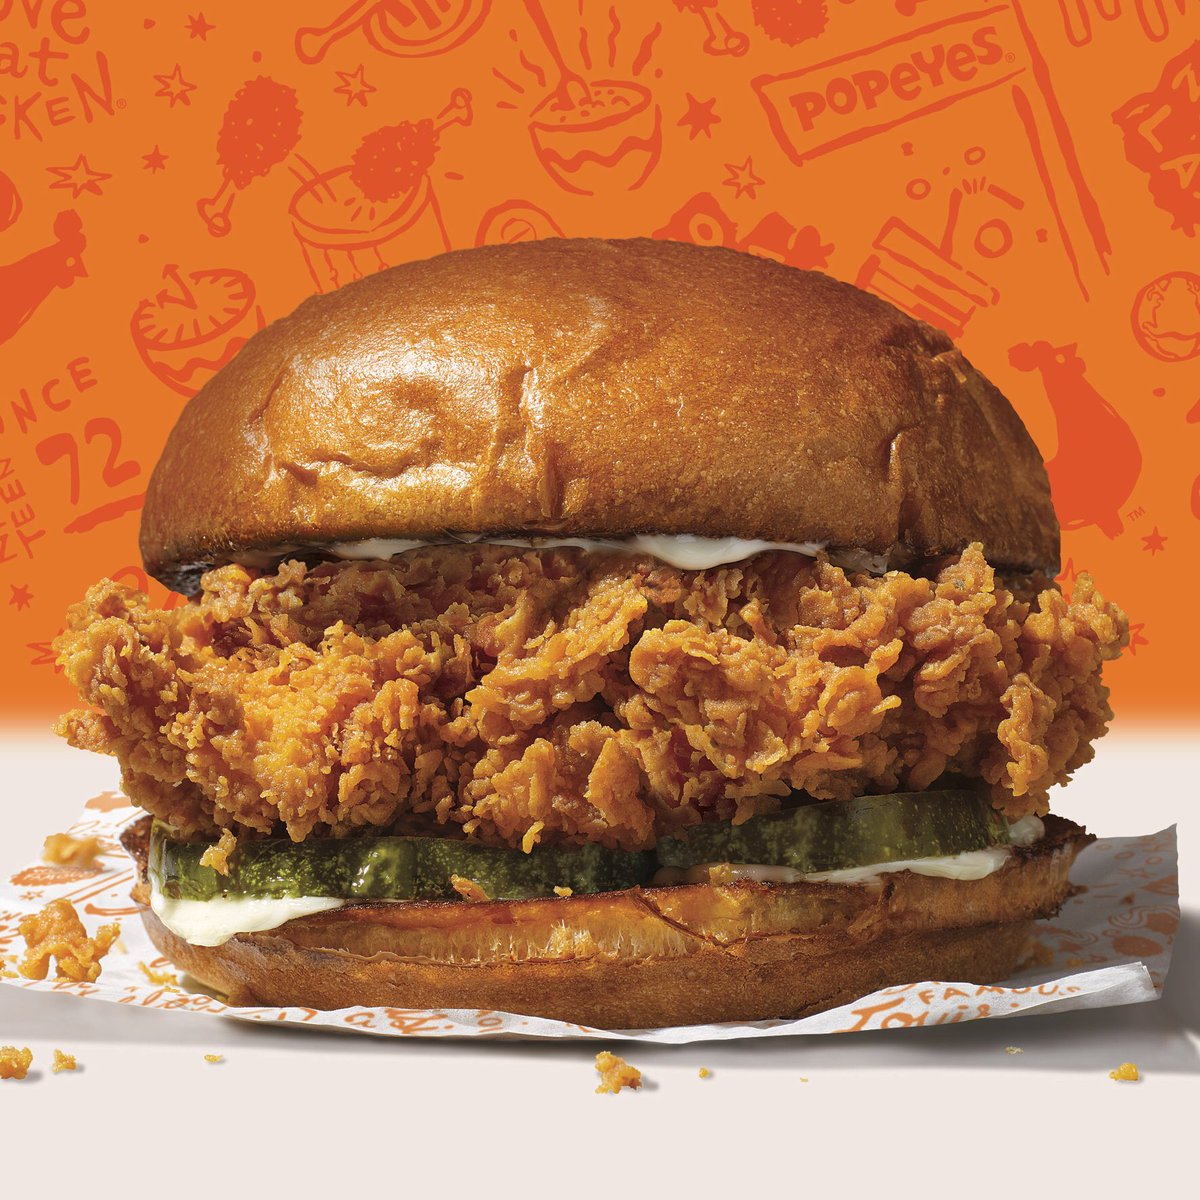 Popeyes Has A New Chicken Sandwich And People Are Comparing It To Chick-Fil-A